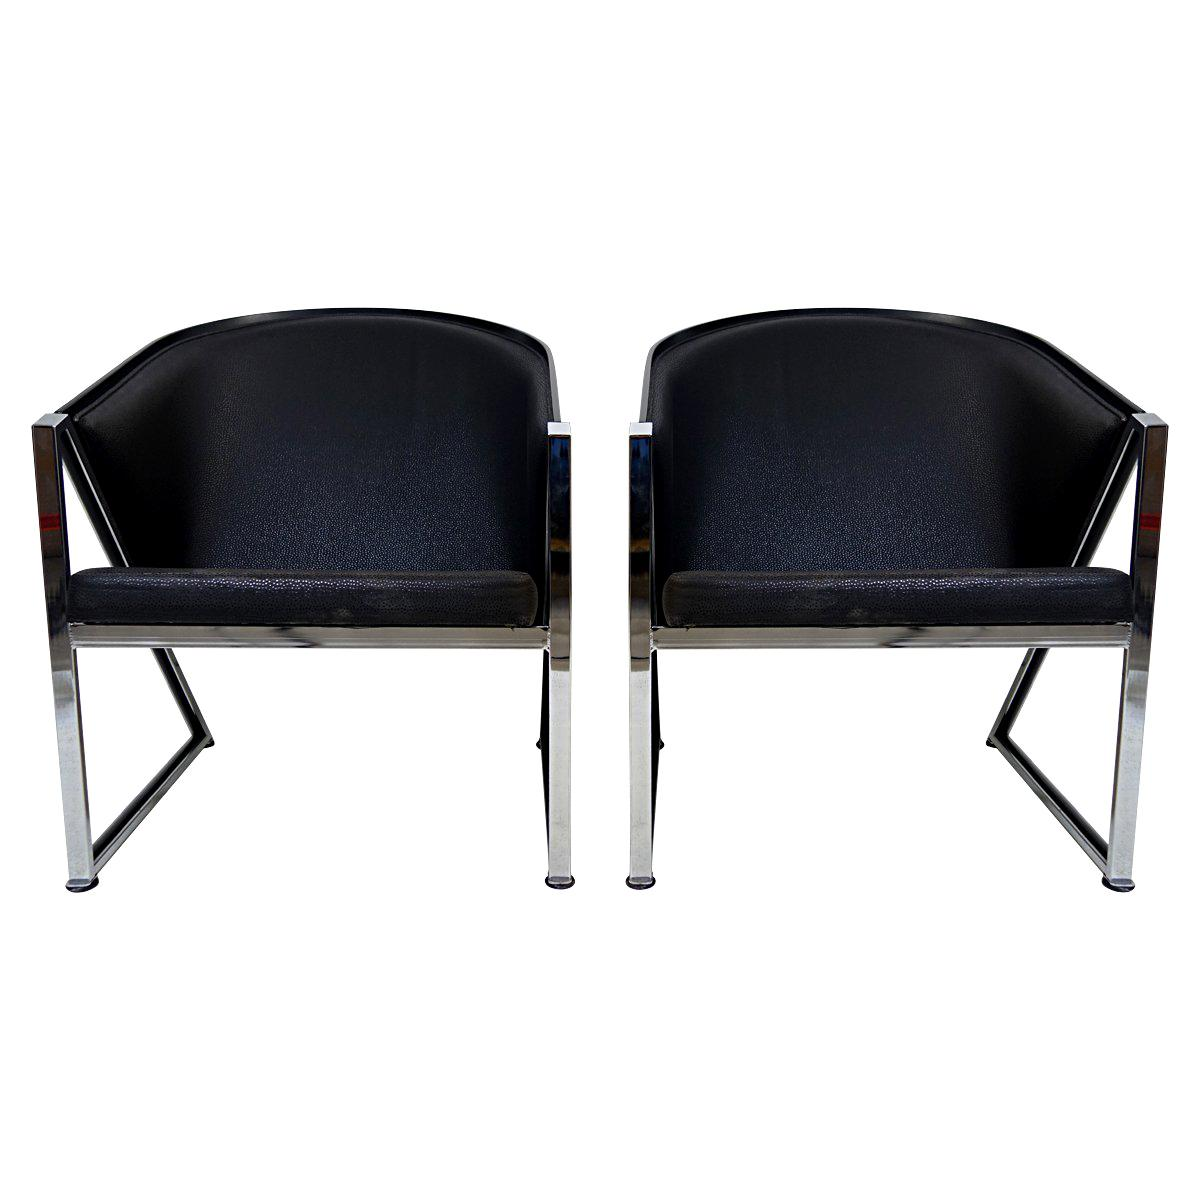 Pair of Mondi Soft Chairs by Finnish Designer Jouko Järvisalo for Inno